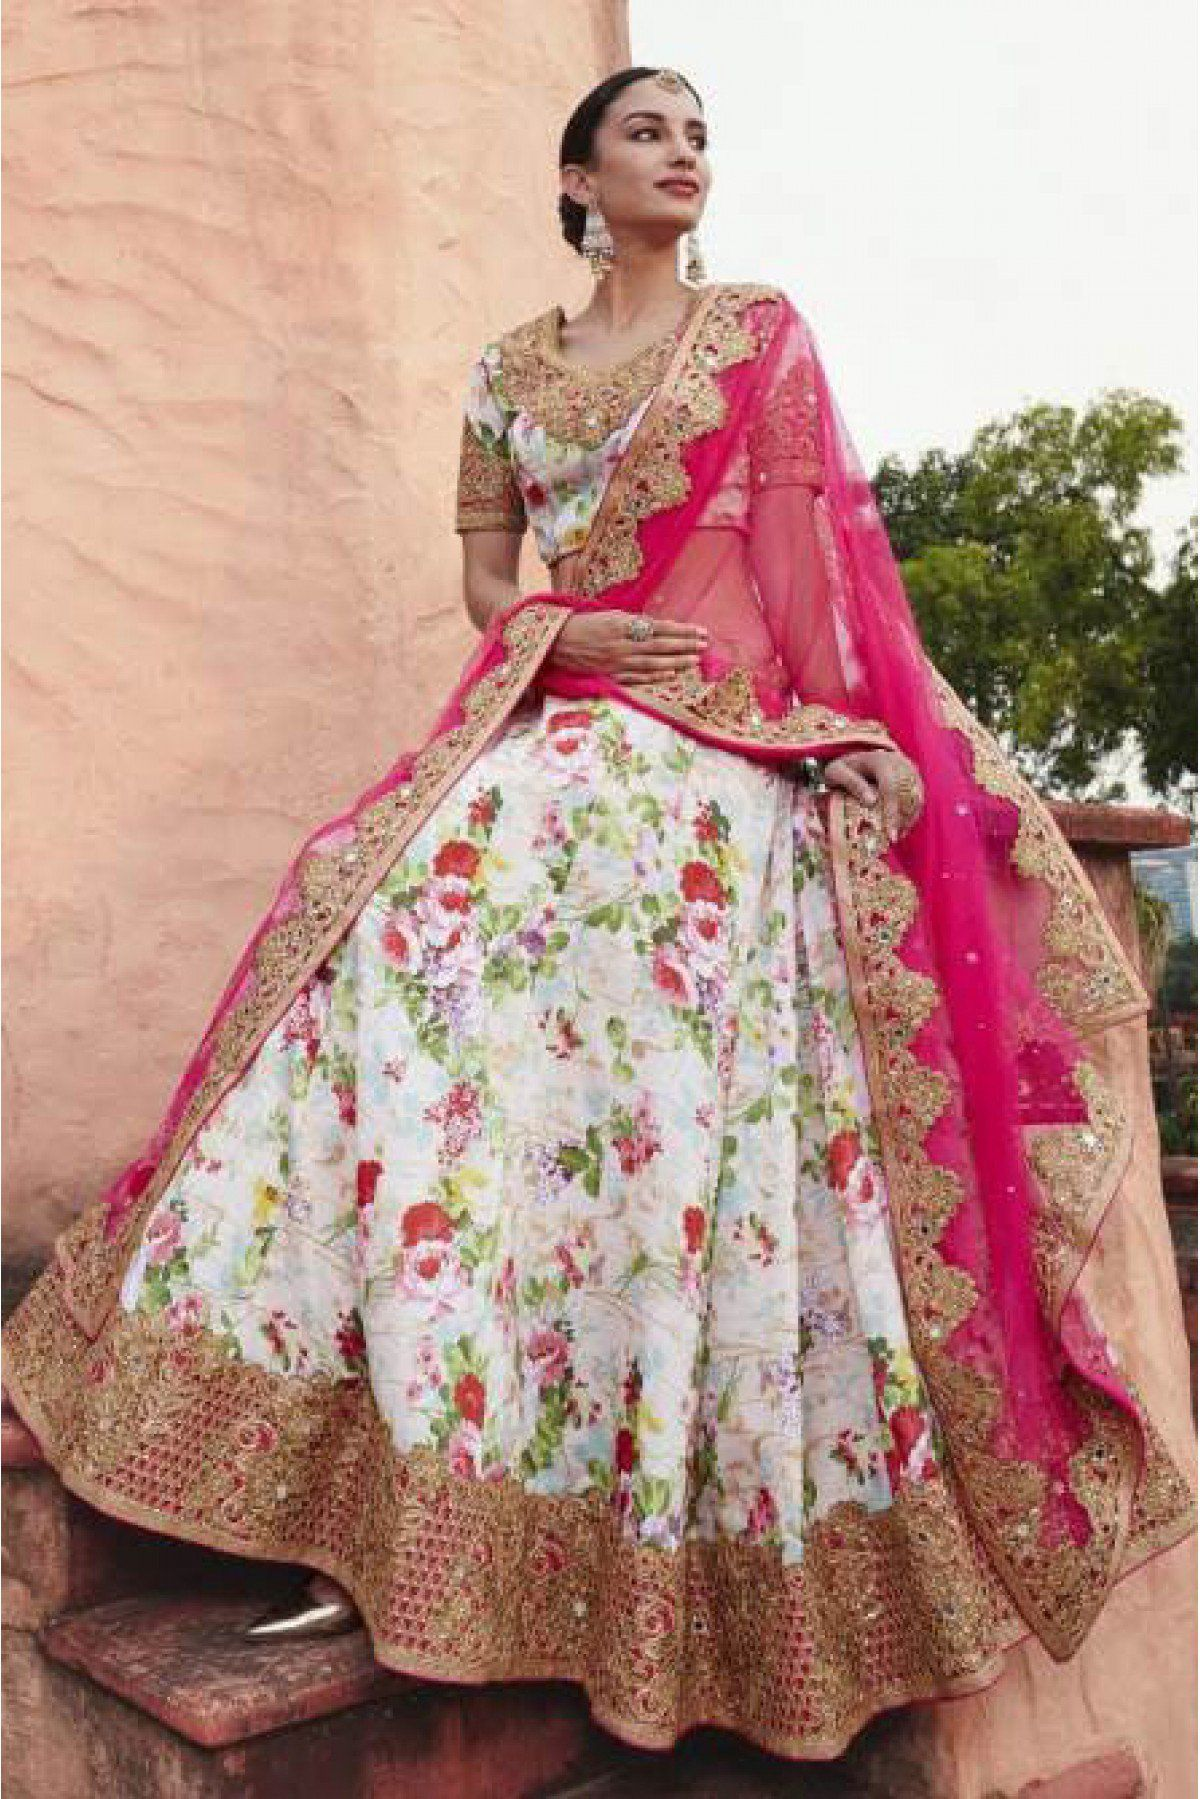 750c24dc5be07f Off White and Pink Colour Georgette Fabric Designer A Line Lehenga Choli  Comes With Matching Blouse and Dupatta. This Lehenga Choli Is Crafted With  Resham ...